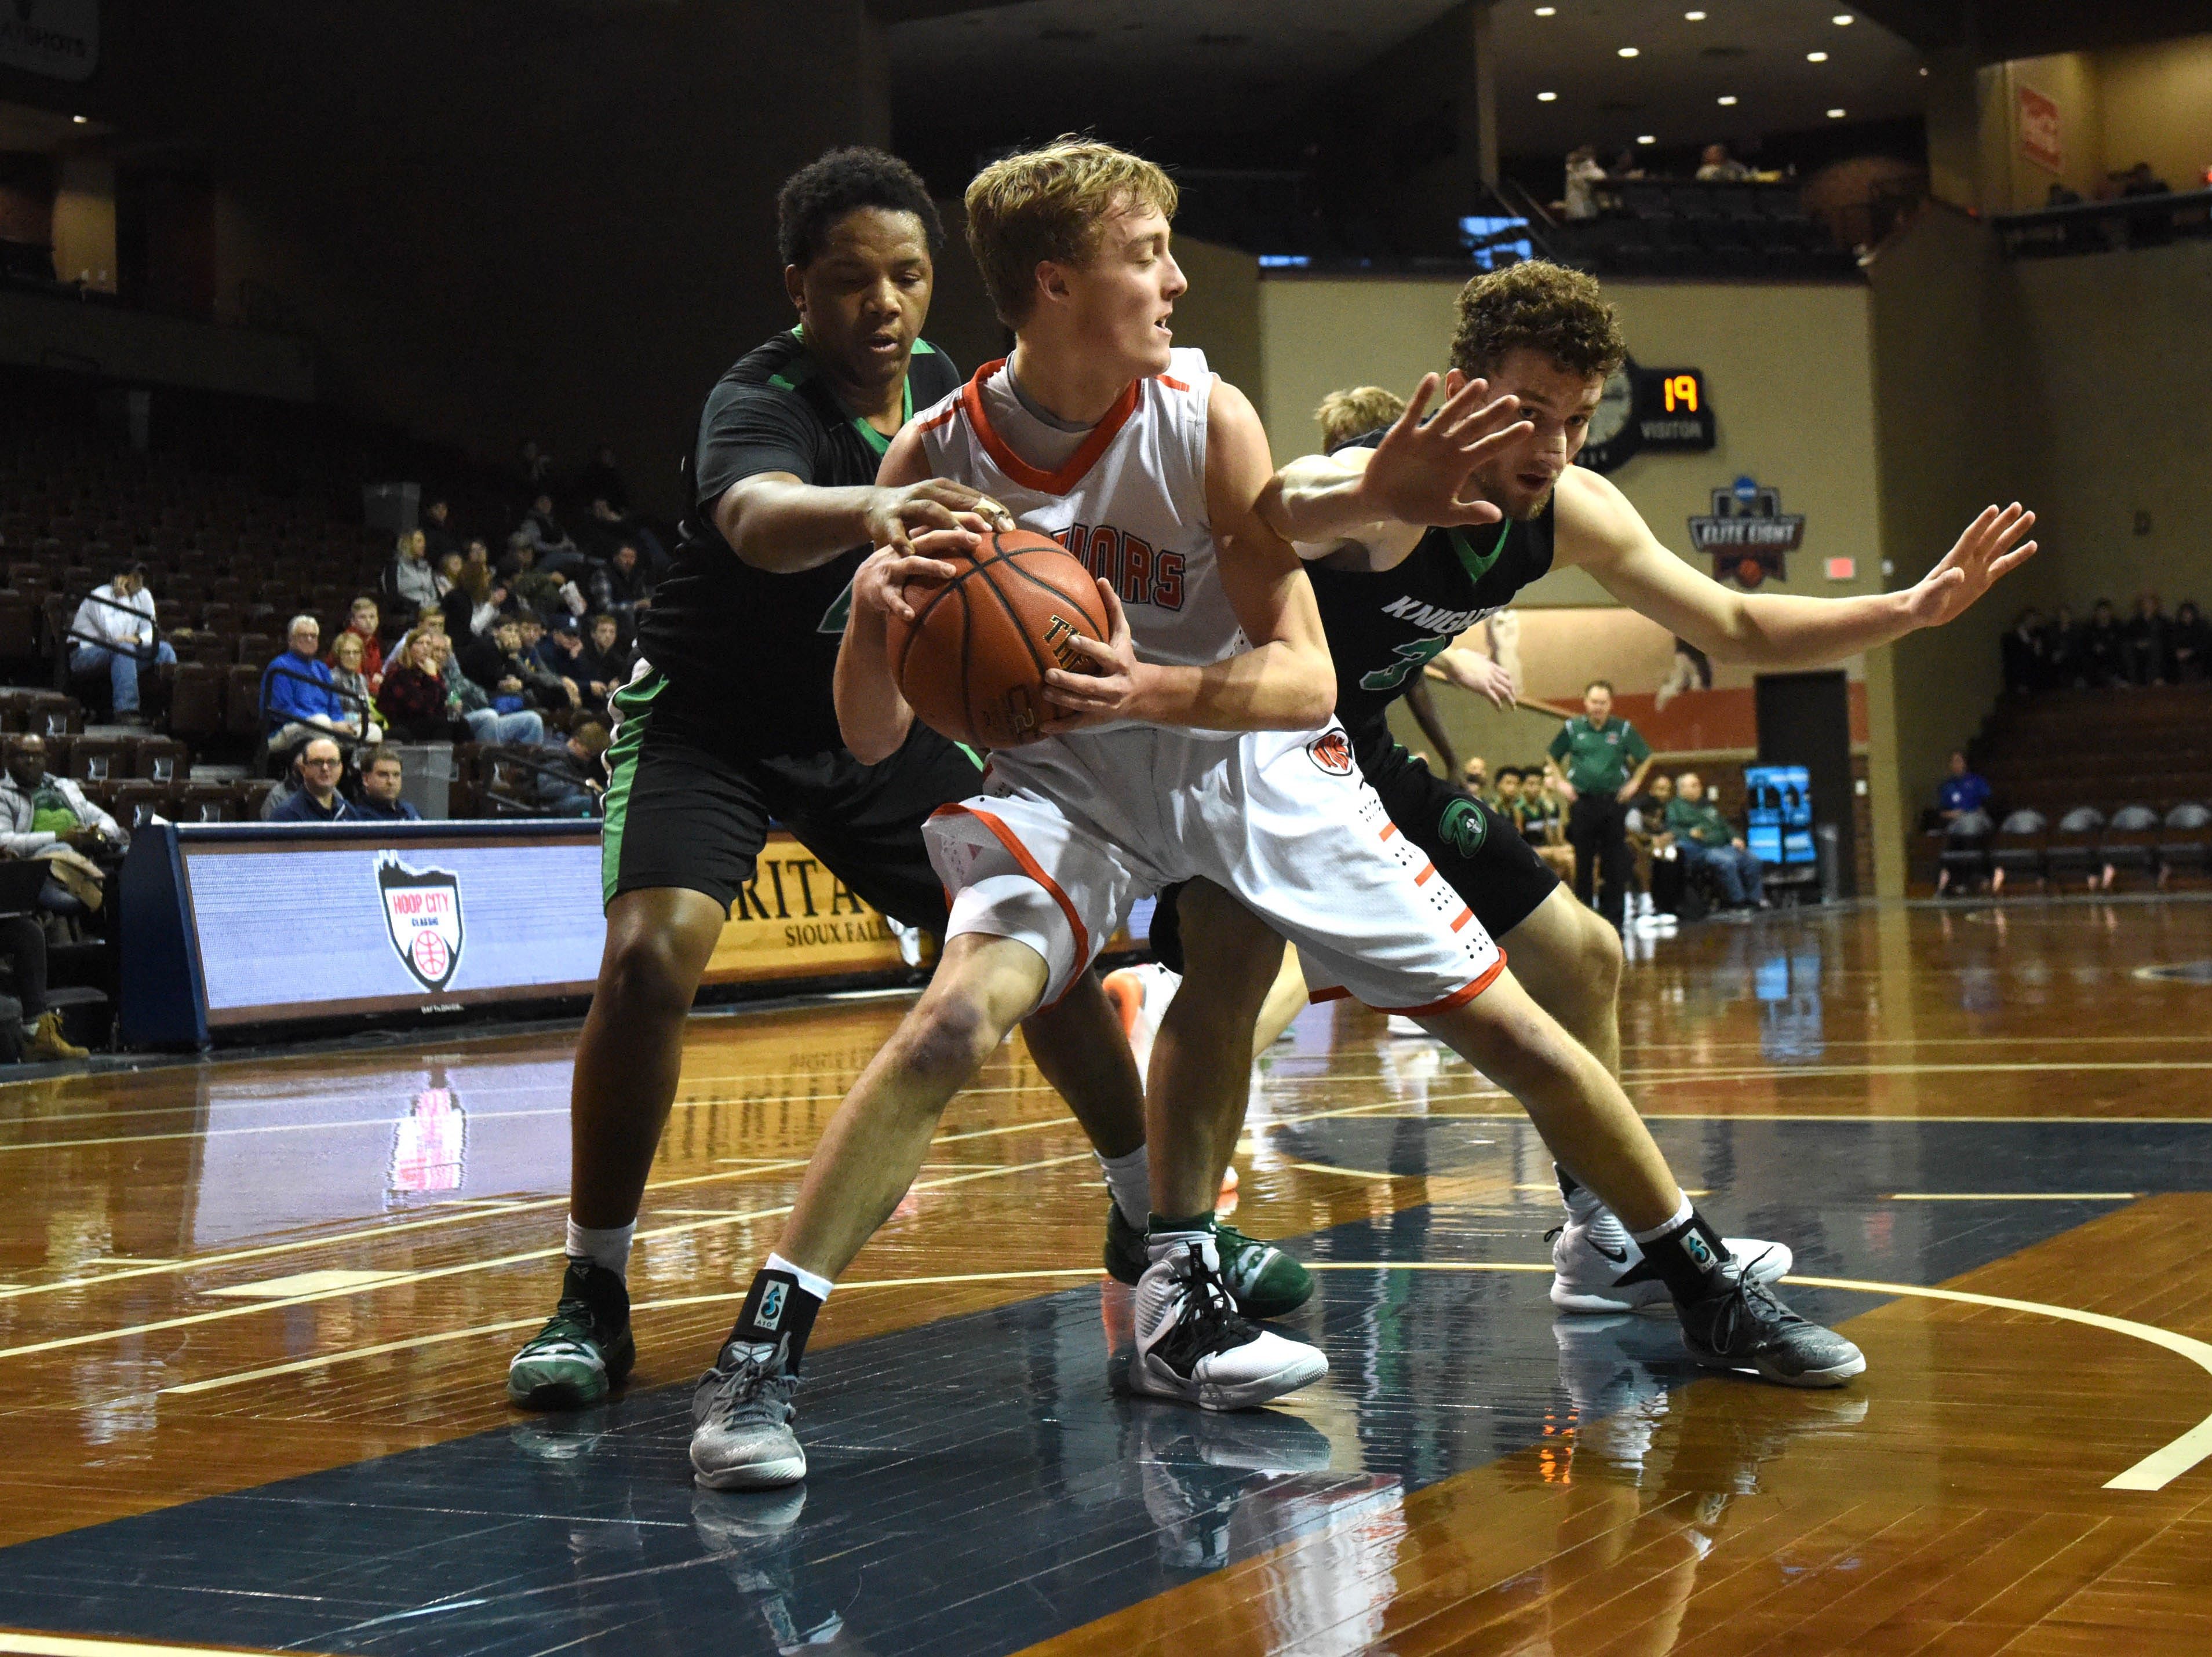 Washington's Dagen Schramm (4) looks to pass the ball during a game against Dominican at the Hoop City Classic at the Sanford Pentagon in Sioux Falls, S.D., Saturday, Dec. 29, 2018.